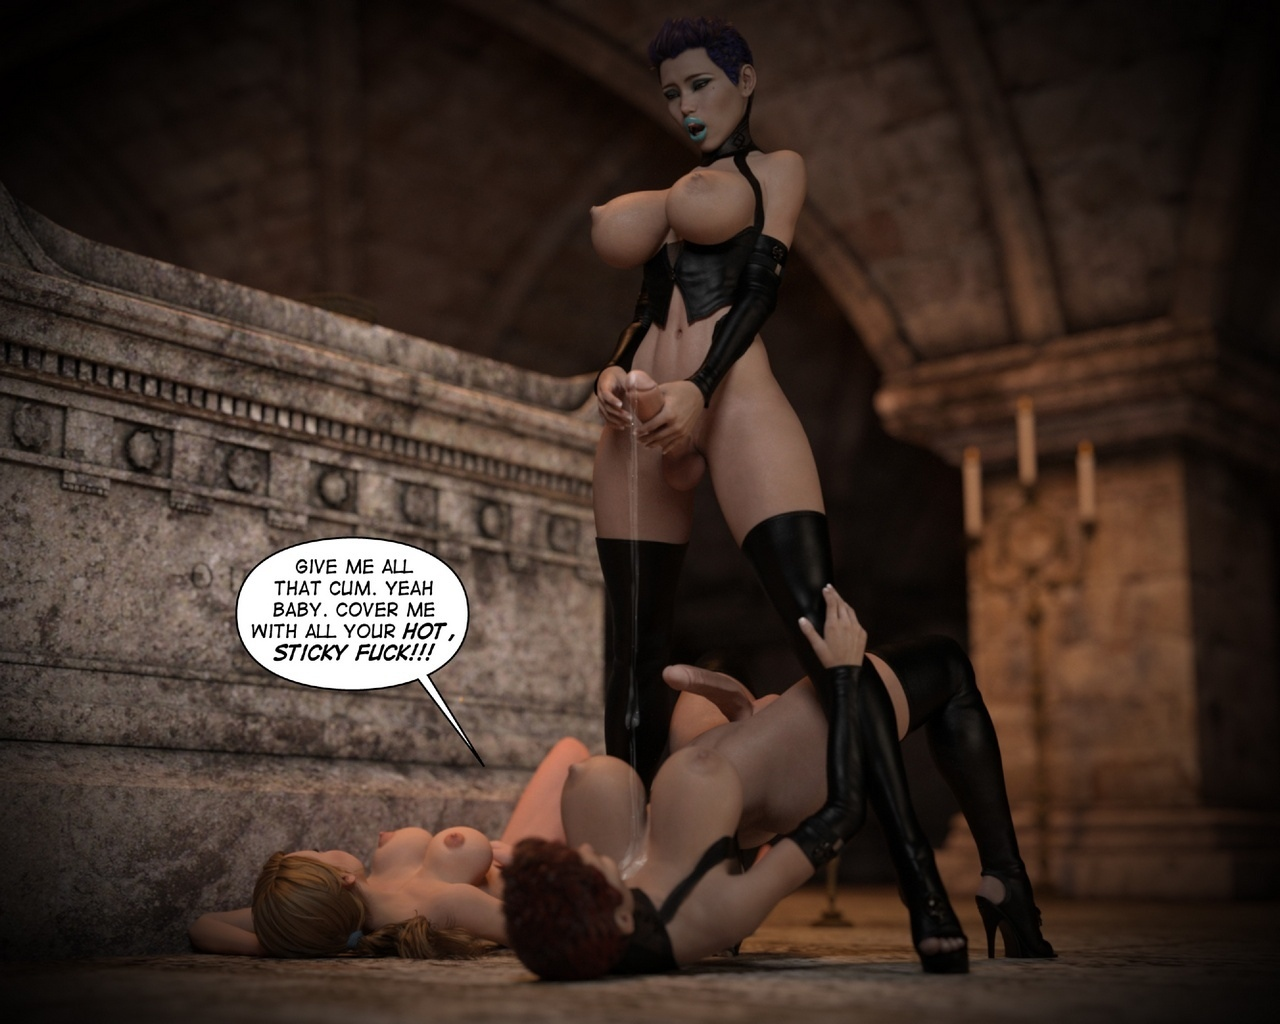 Helen-Black-Vampire-Hunter-To-Hell-1 54 free sex comic